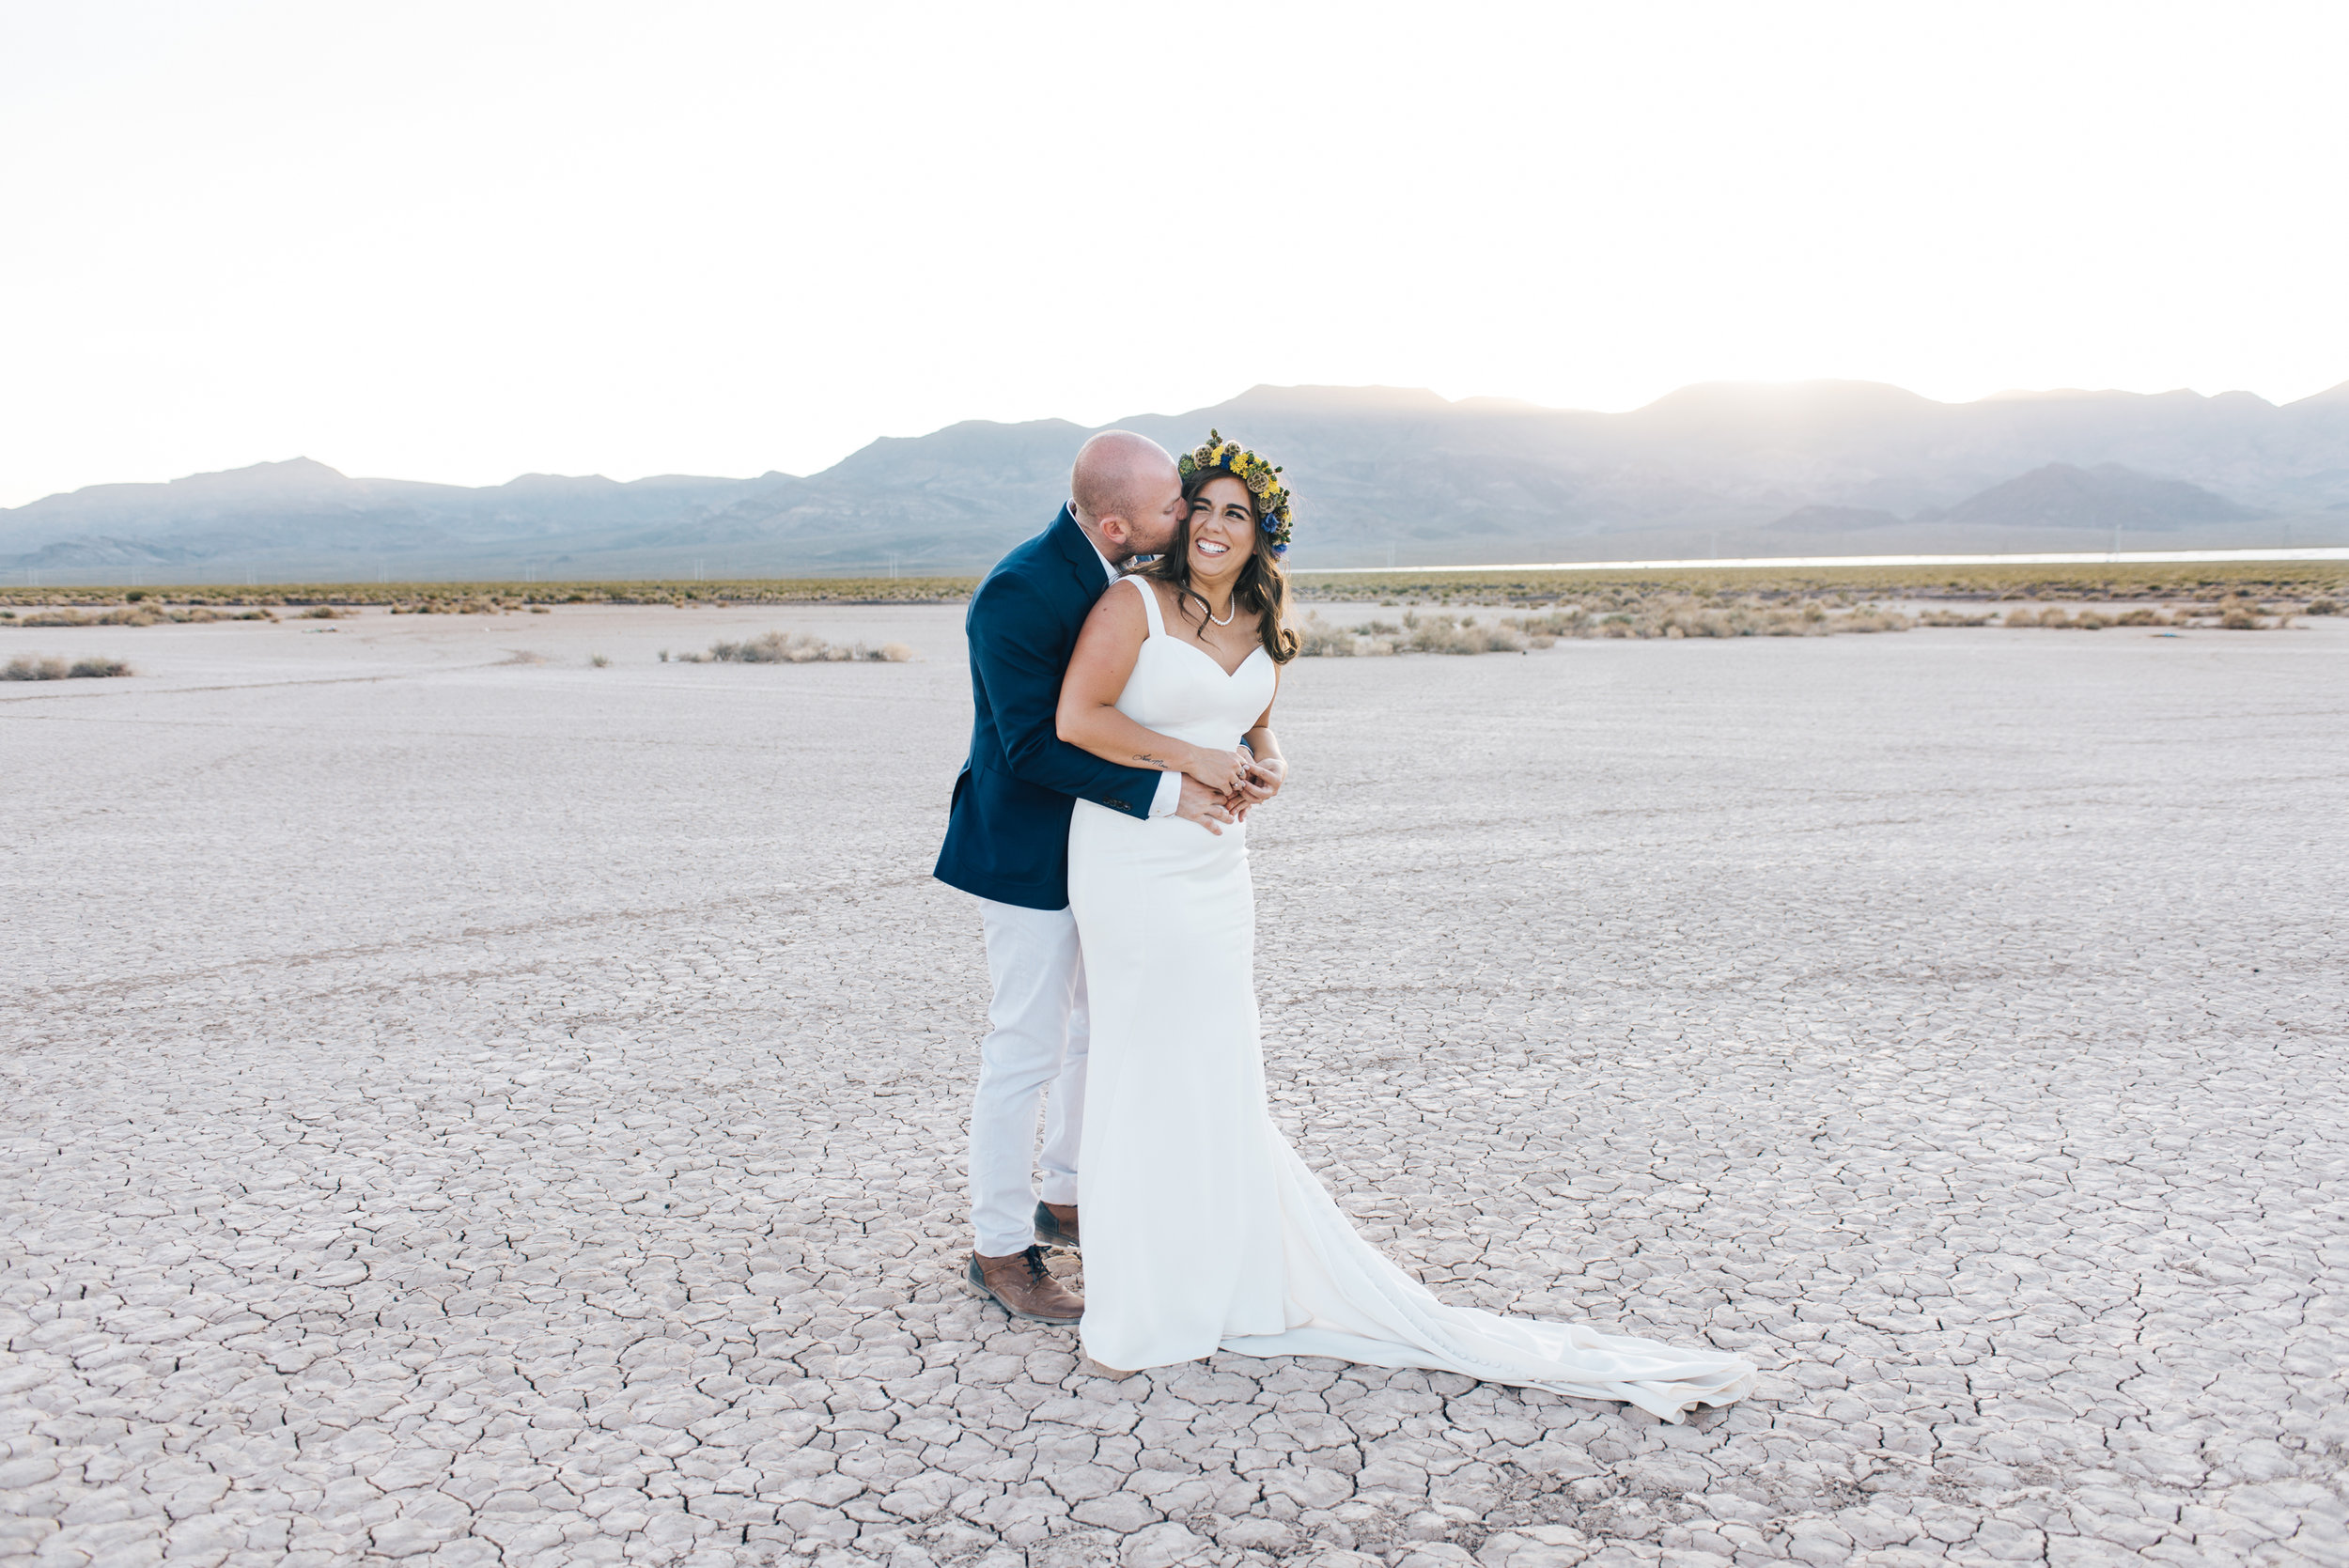 ted baker groom suit, groom, dry lake bed elopement, elopement, flora pop, las vegas wedding, las vegas elopement, pop up wedding, desert wedding, essence of australia wedding dress, wedding dress, bride, bride style, bridal, aussie wedding, las vegas photographer, desert life, summer wedding, blush, blush bridal party, girls, flower crown,